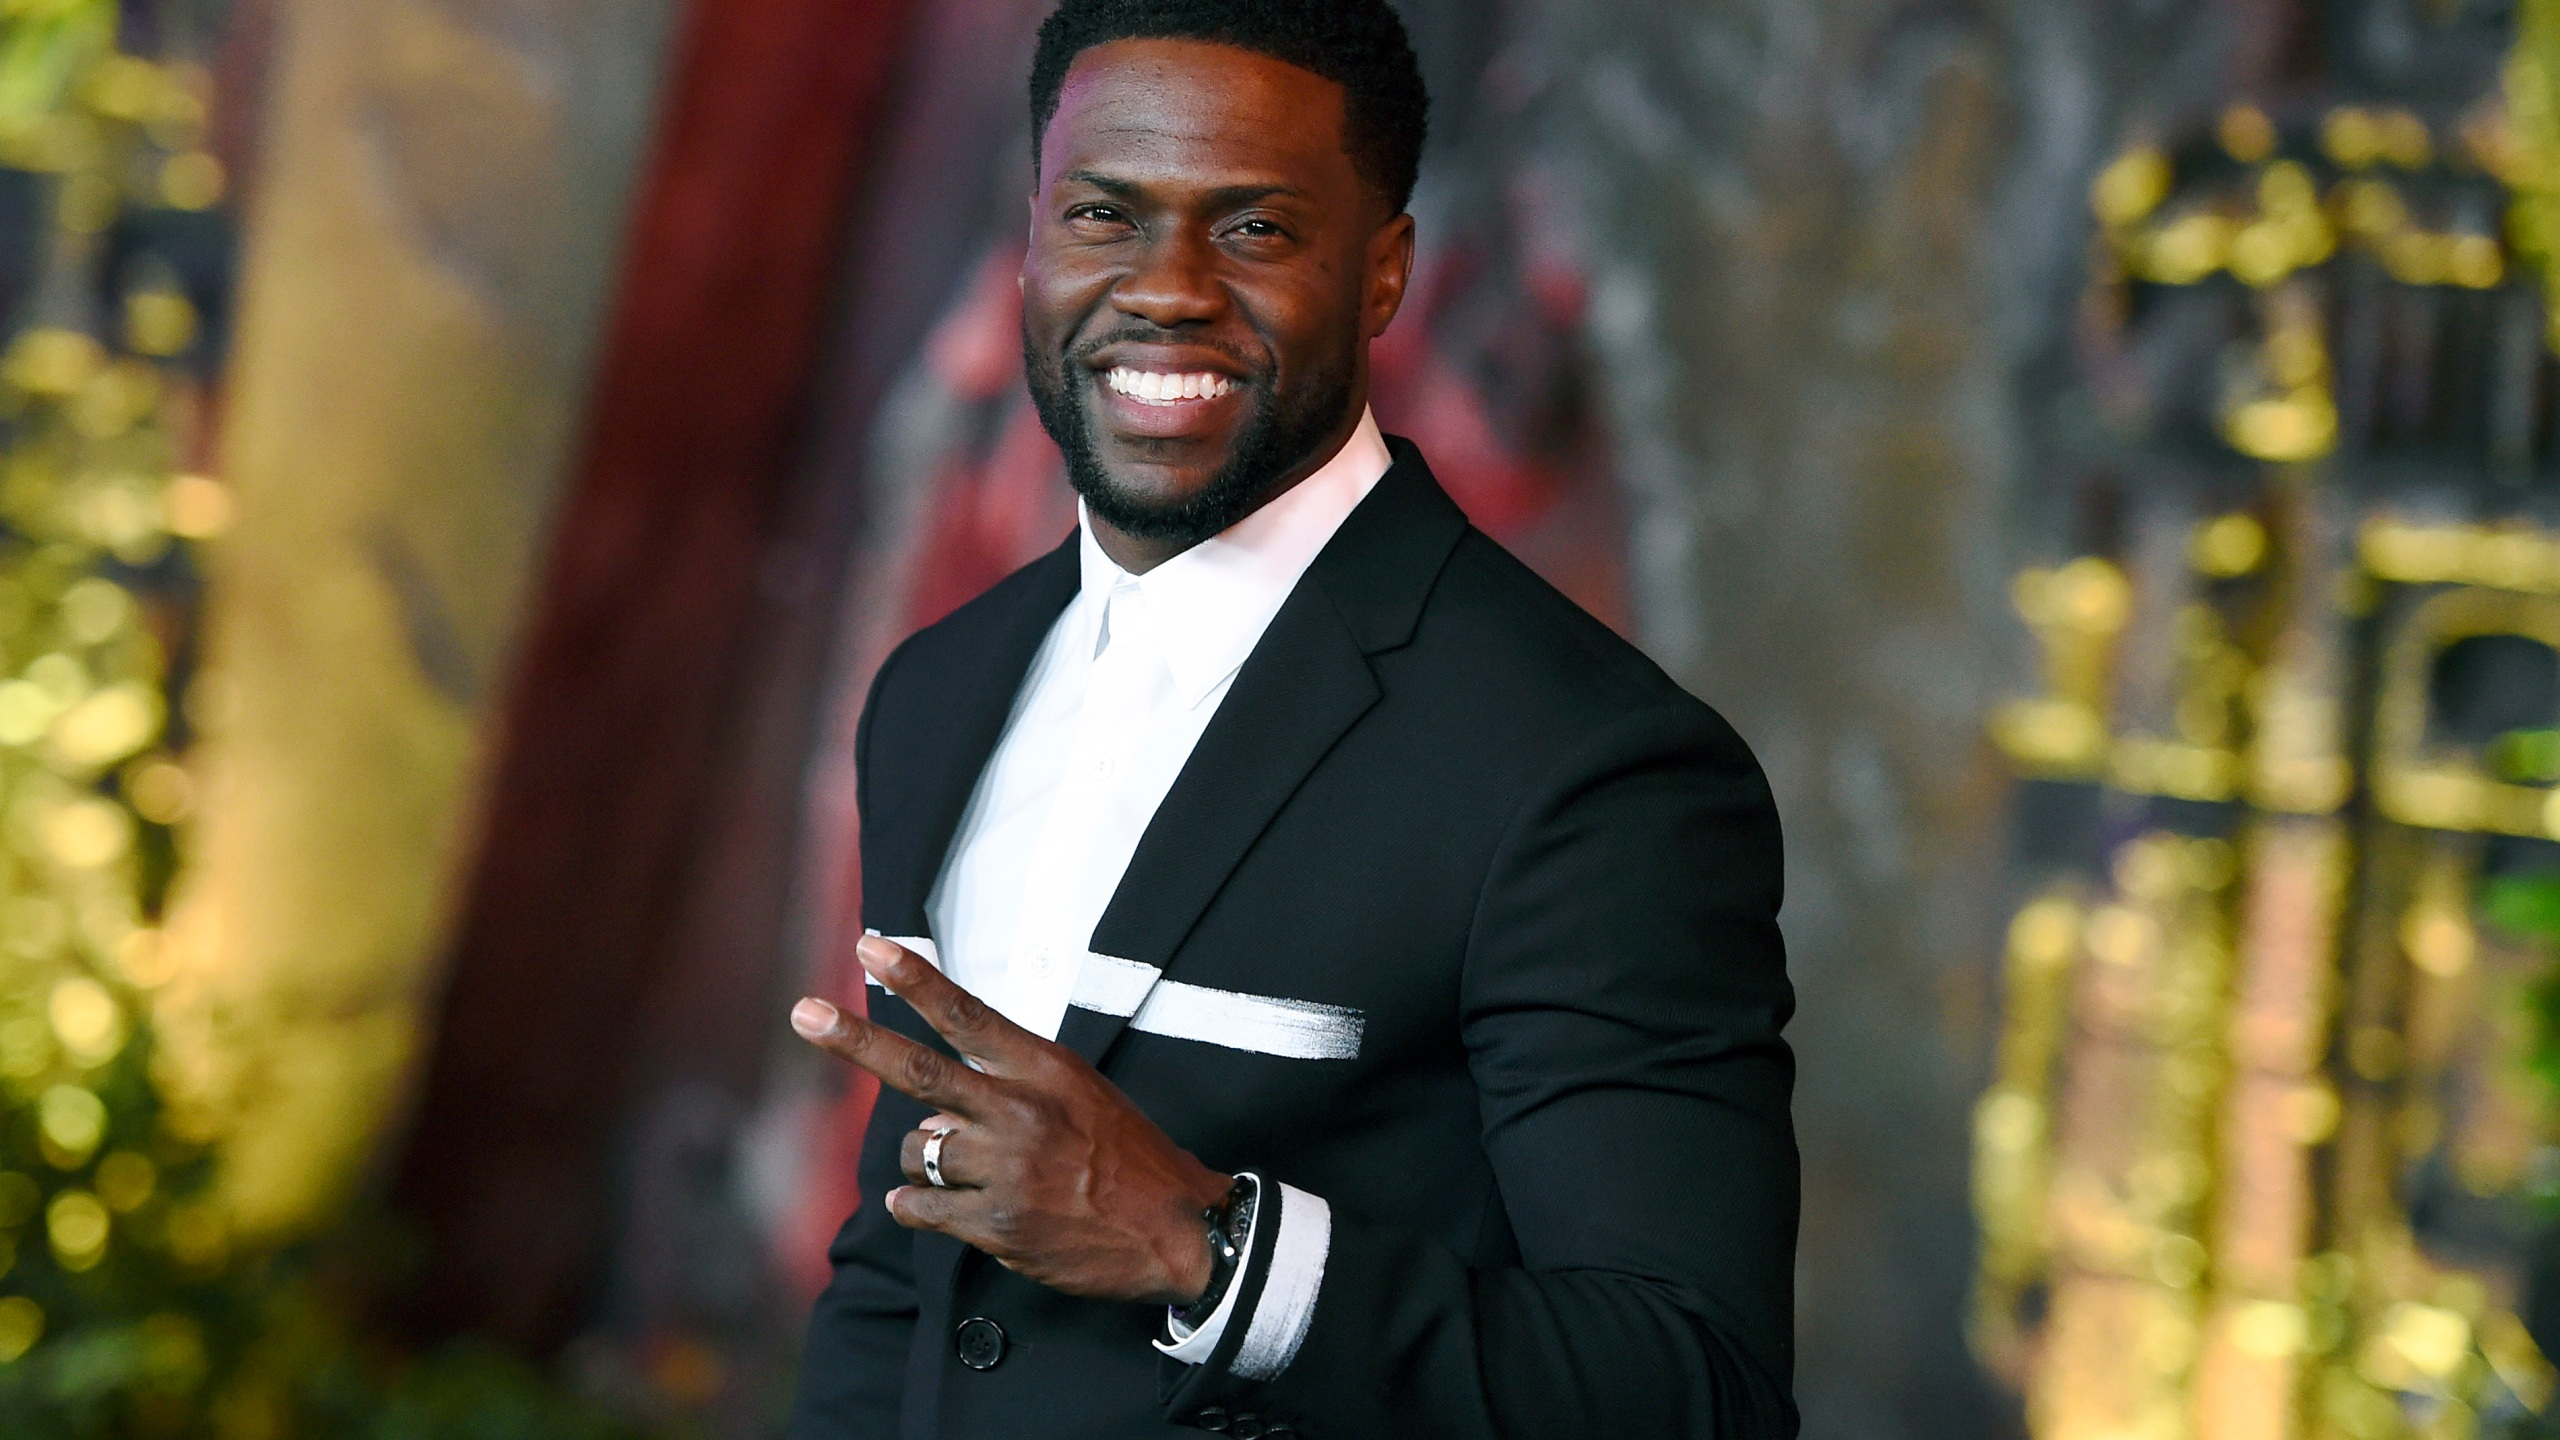 People-Kevin_Hart_75326-159532.jpg59779170